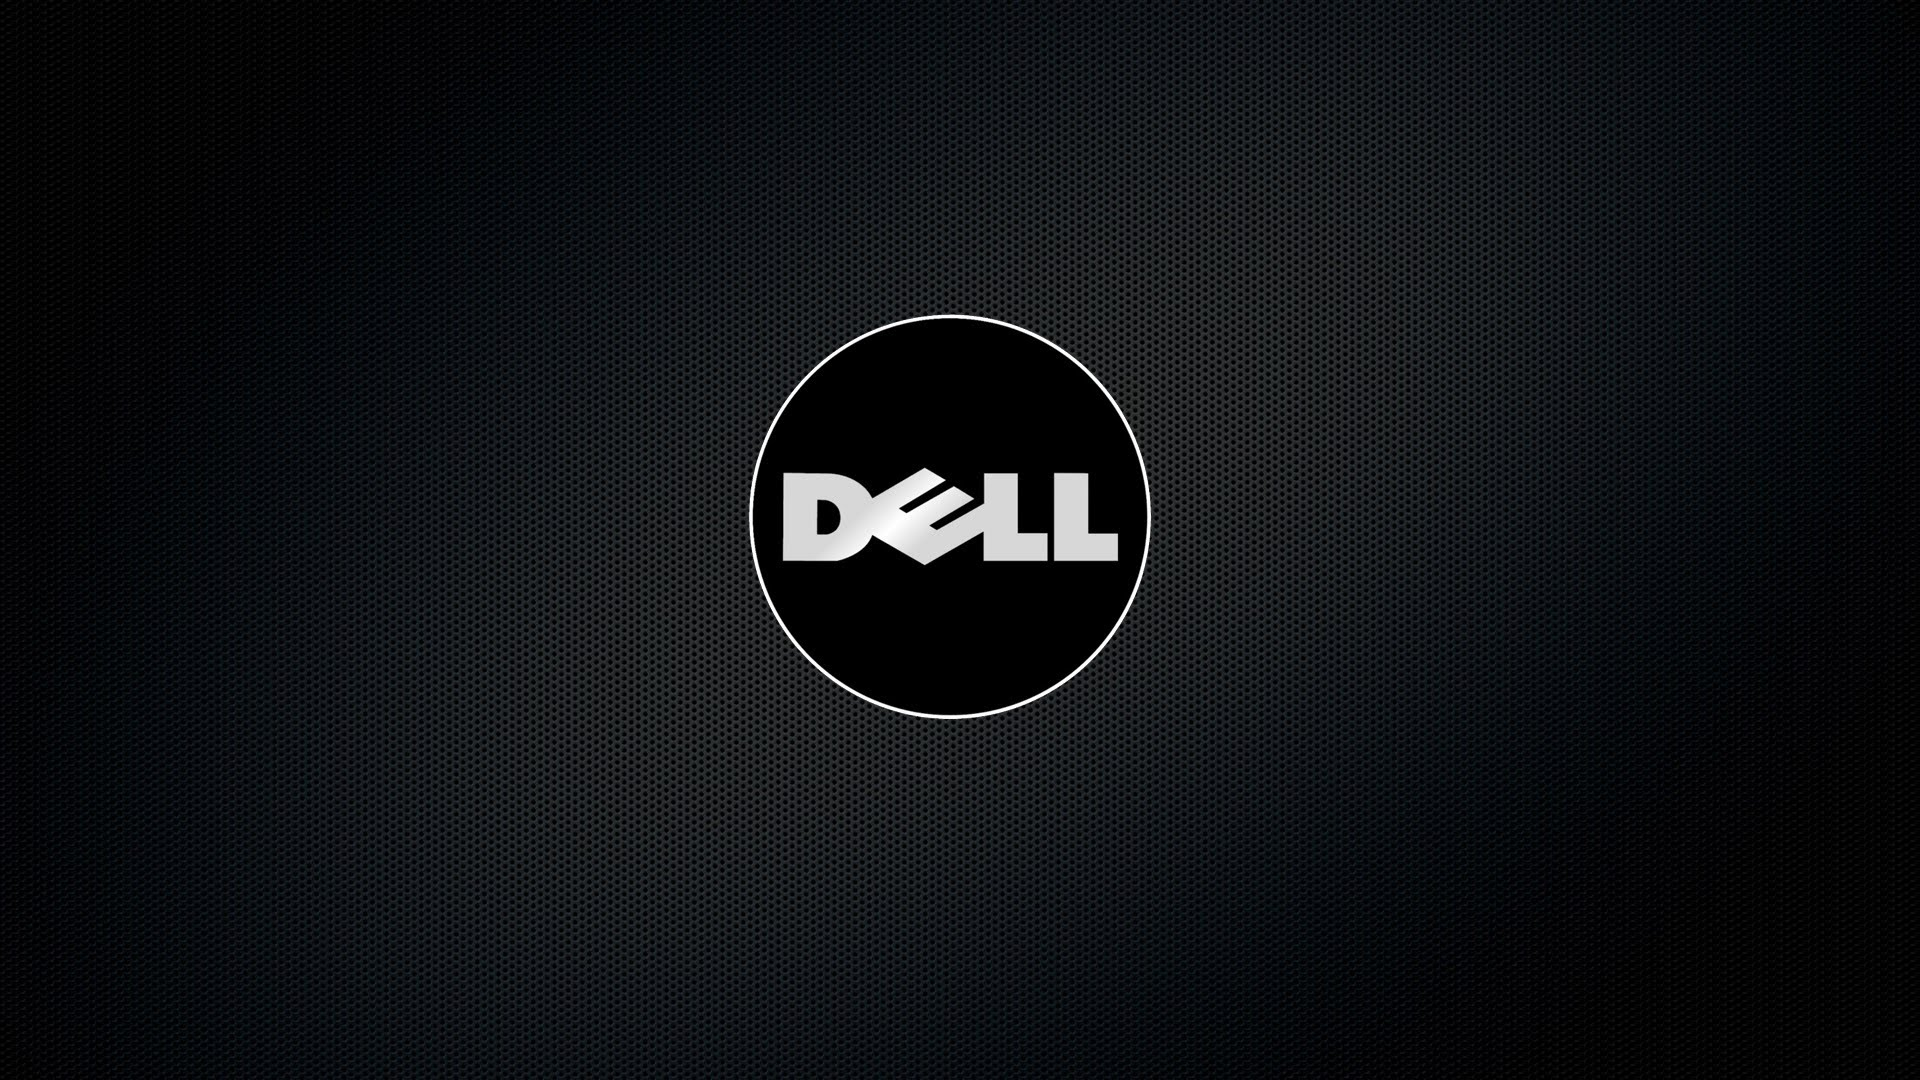 Dell XPS 4K Wallpapers - Top Free Dell XPS 4K Backgrounds ...